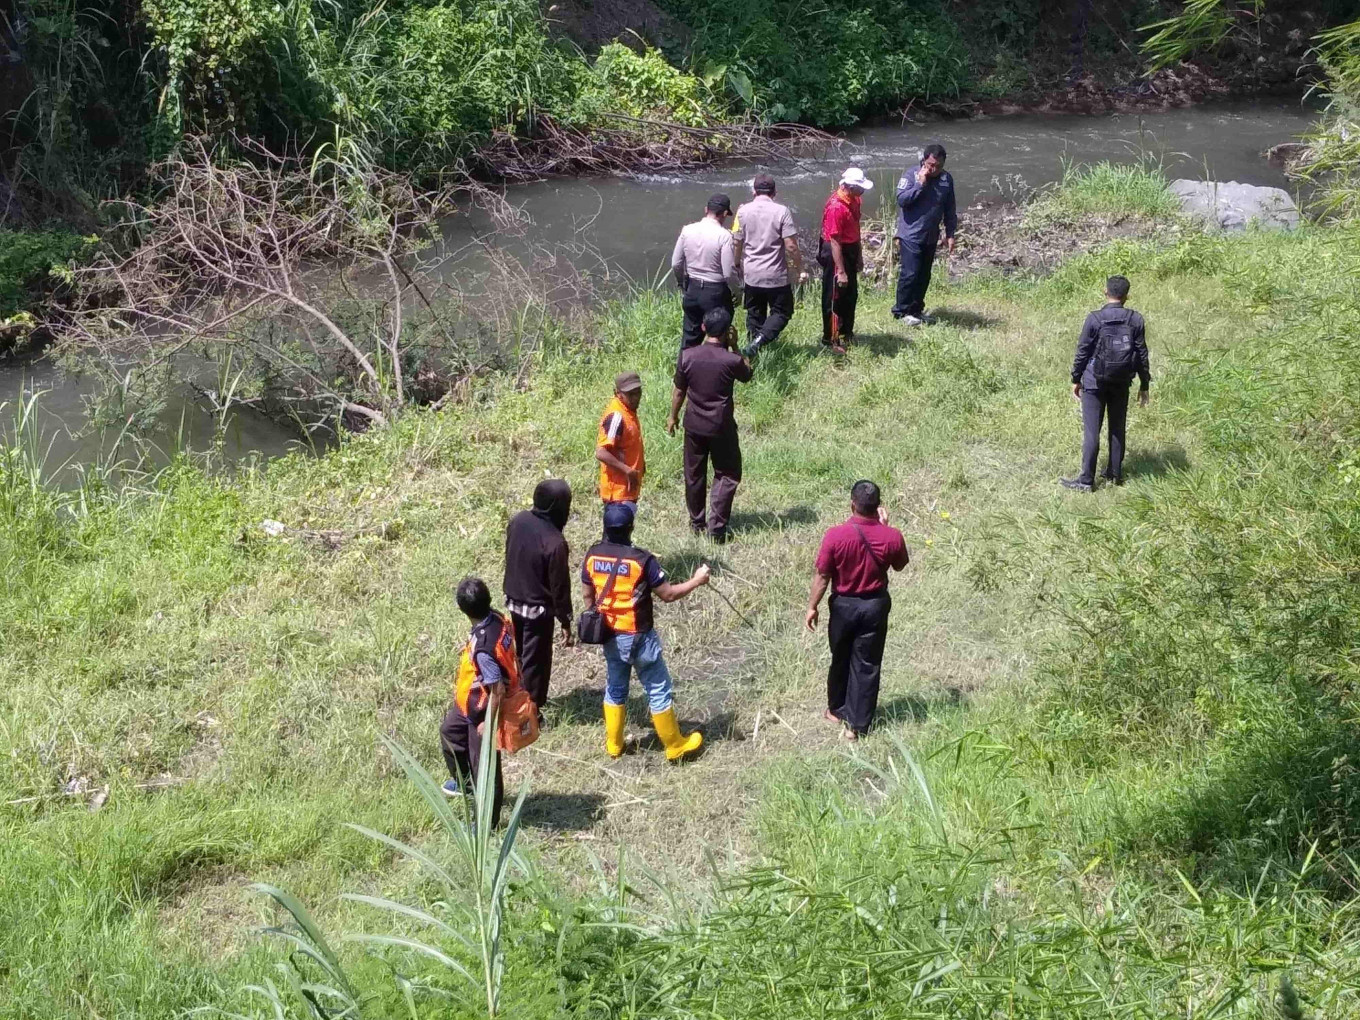 Blitar Police in search of homicide victim's head